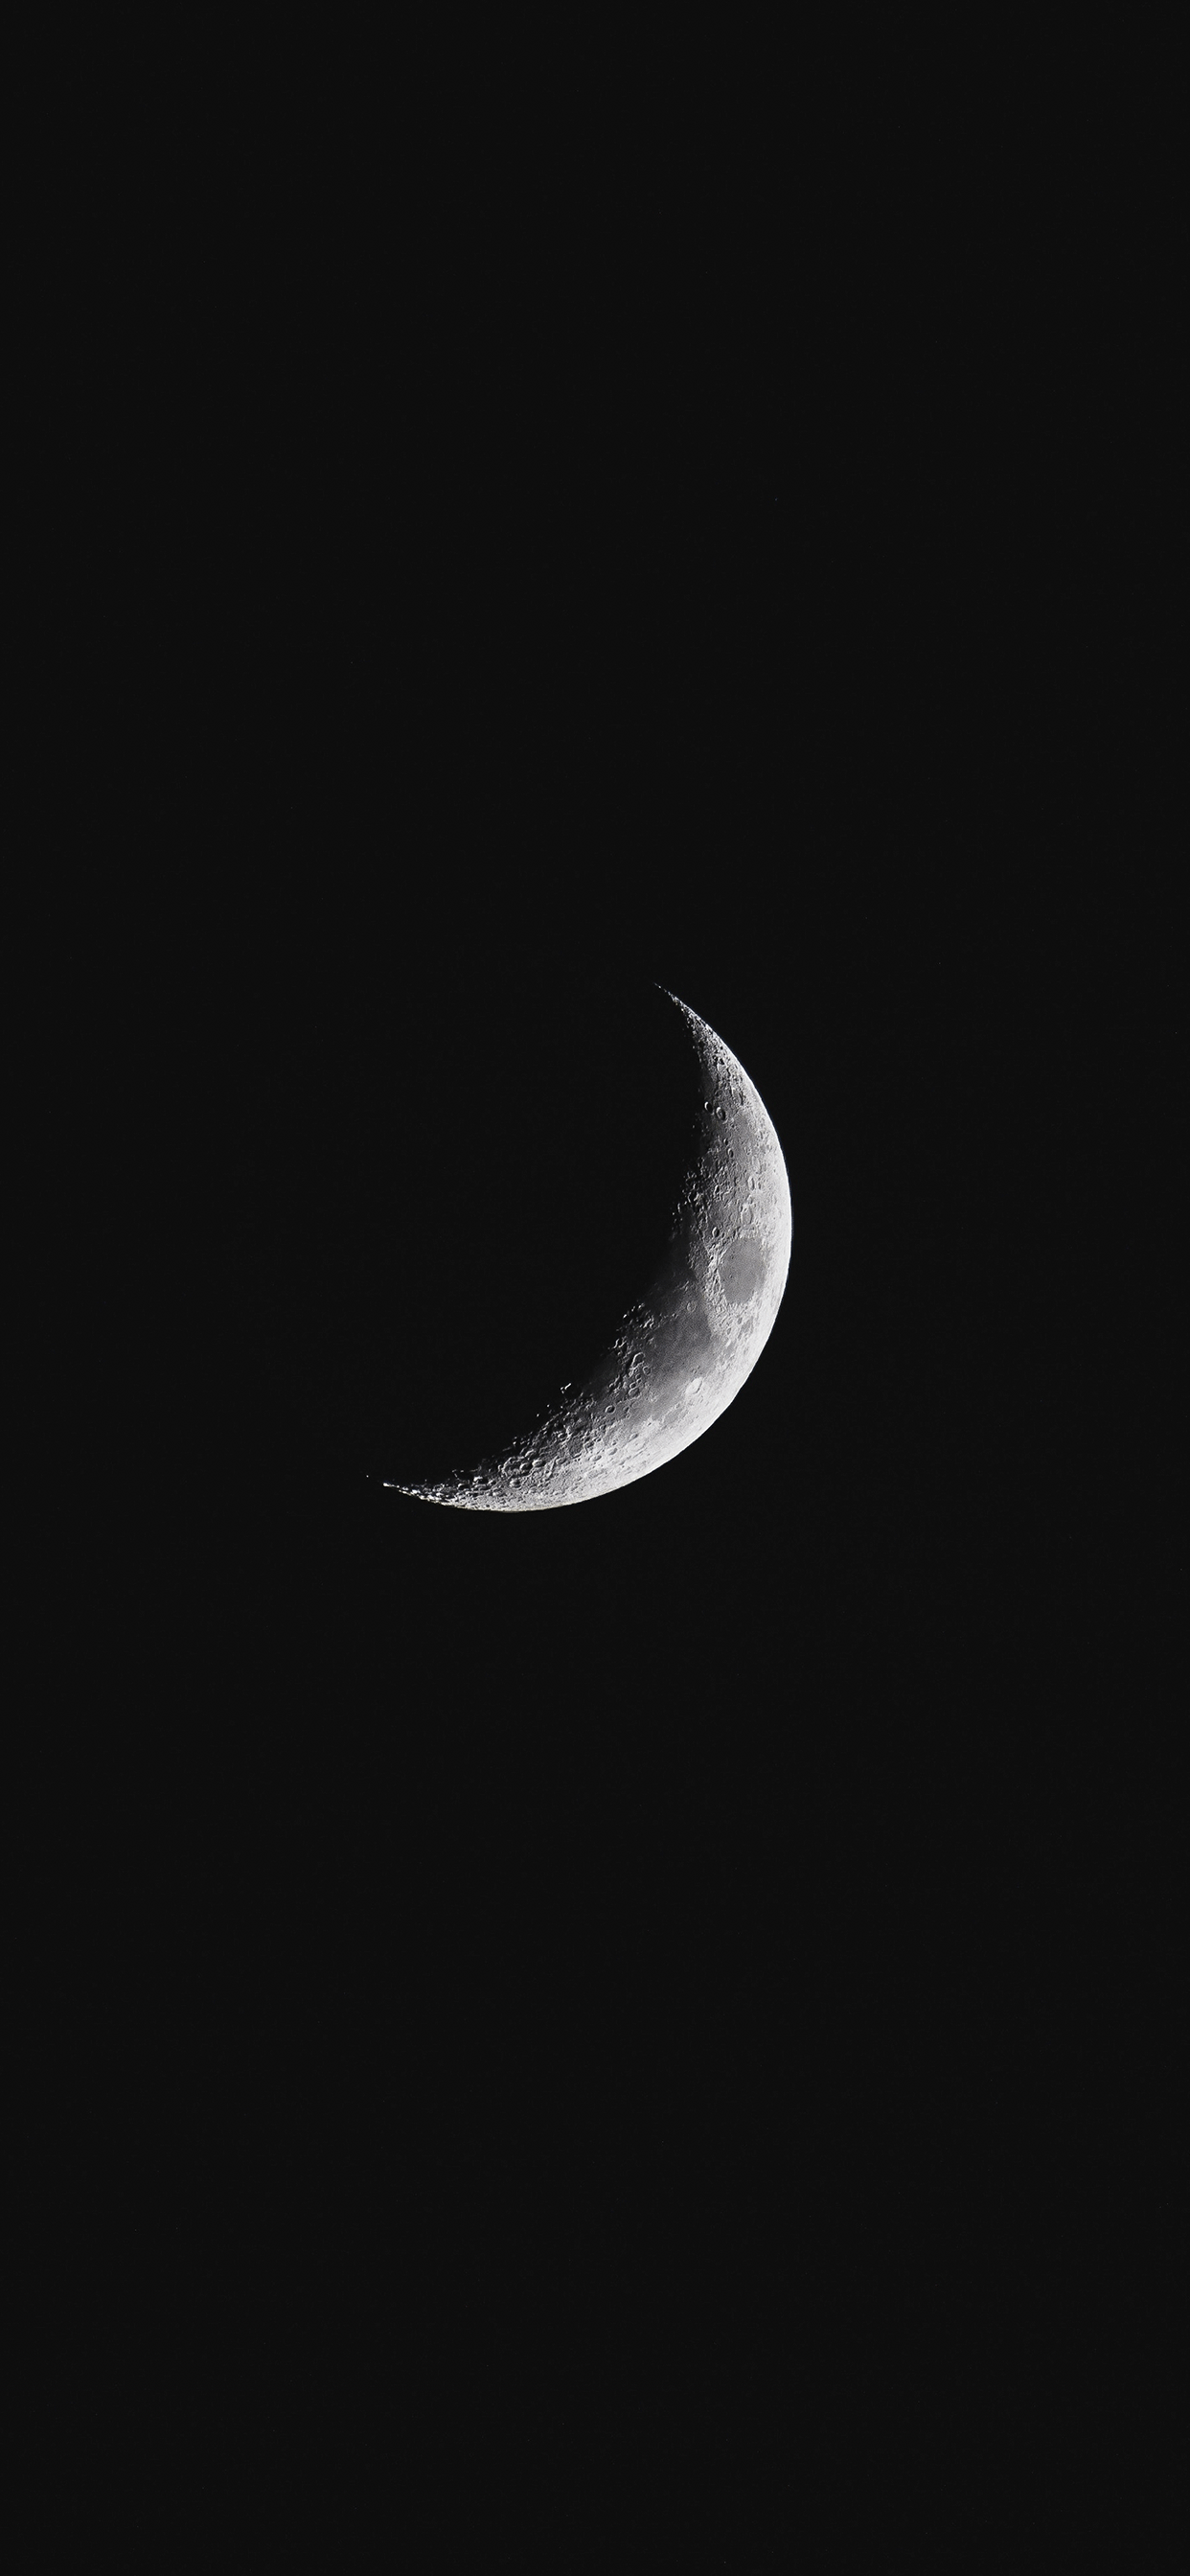 iPhone wallpapers black moon Fonds d'écran iPhone du 27/06/2019